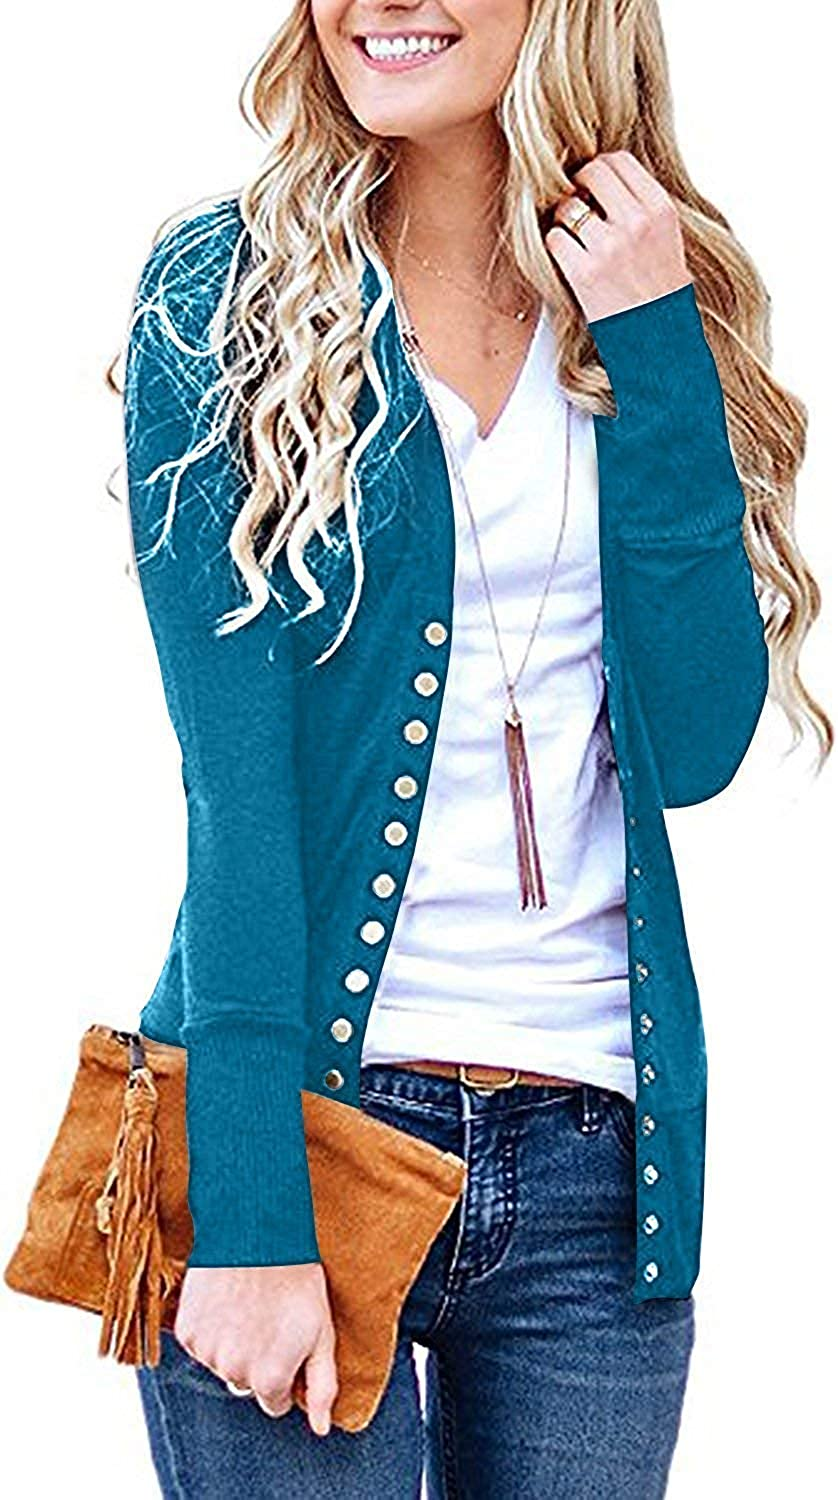 Chuhee Womens S-3XL Long Sleeve Button Knitwear Casual Soft Knit Cardigans